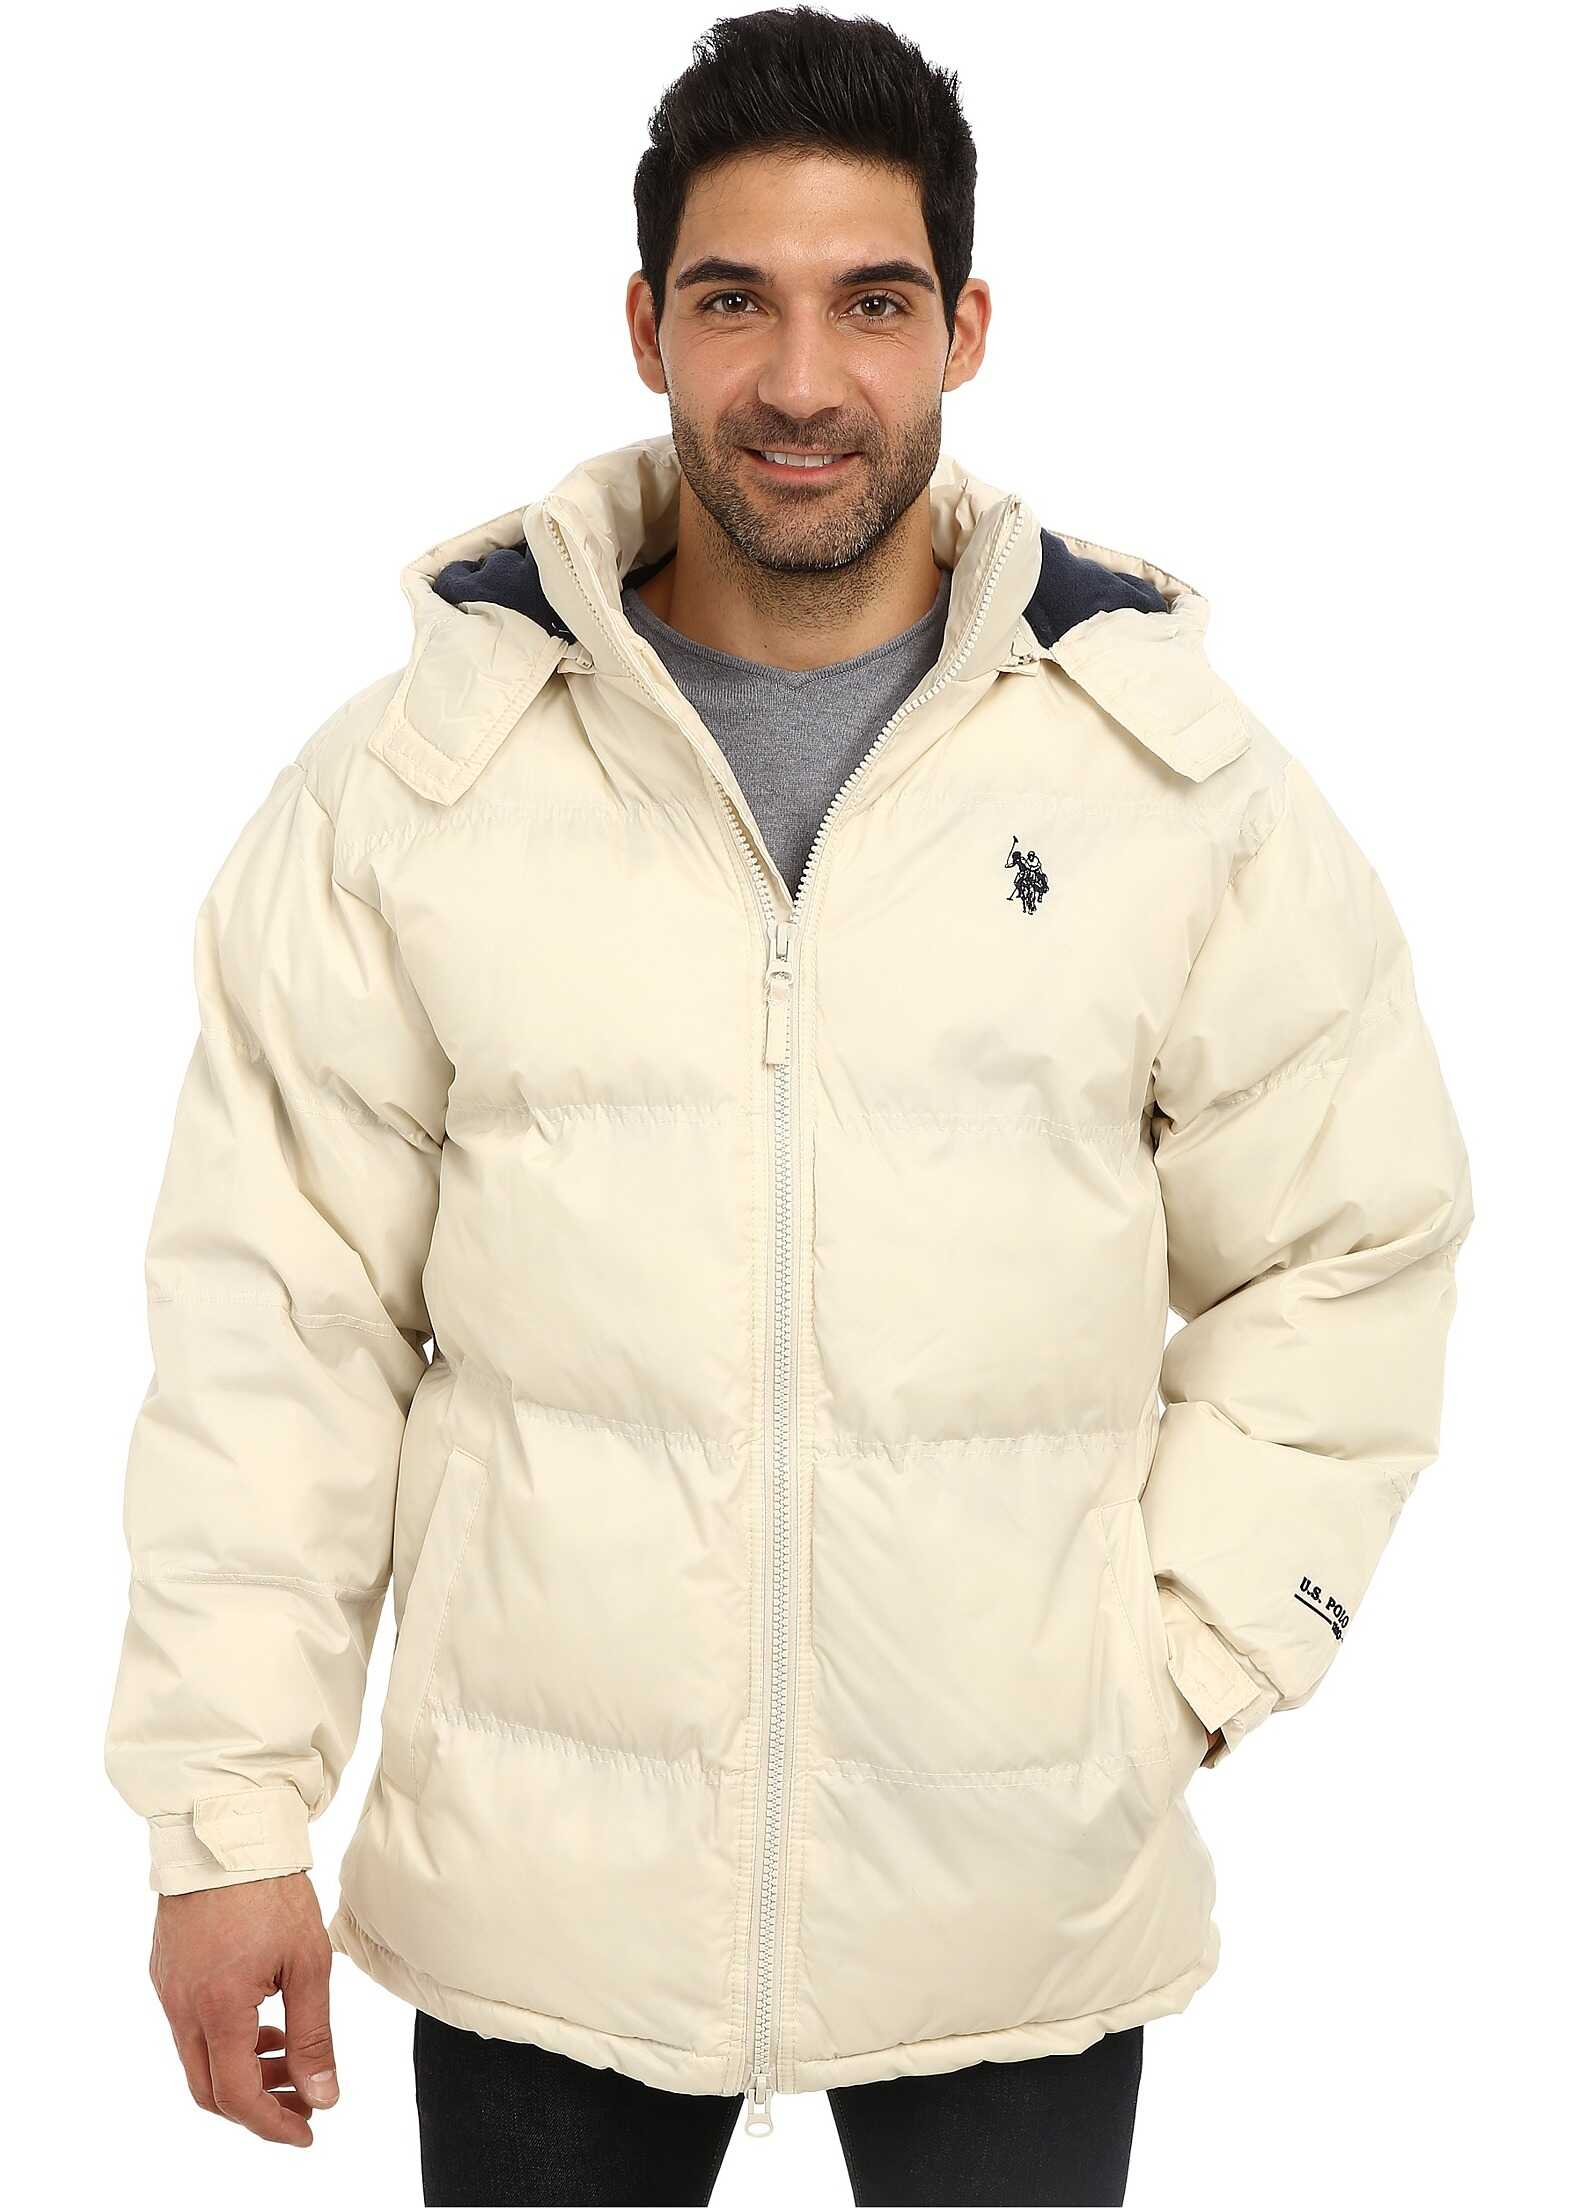 U.S. POLO ASSN. Signature Long Bubble Coat w/ Small Pony & Polar Fleece Lining White Winter